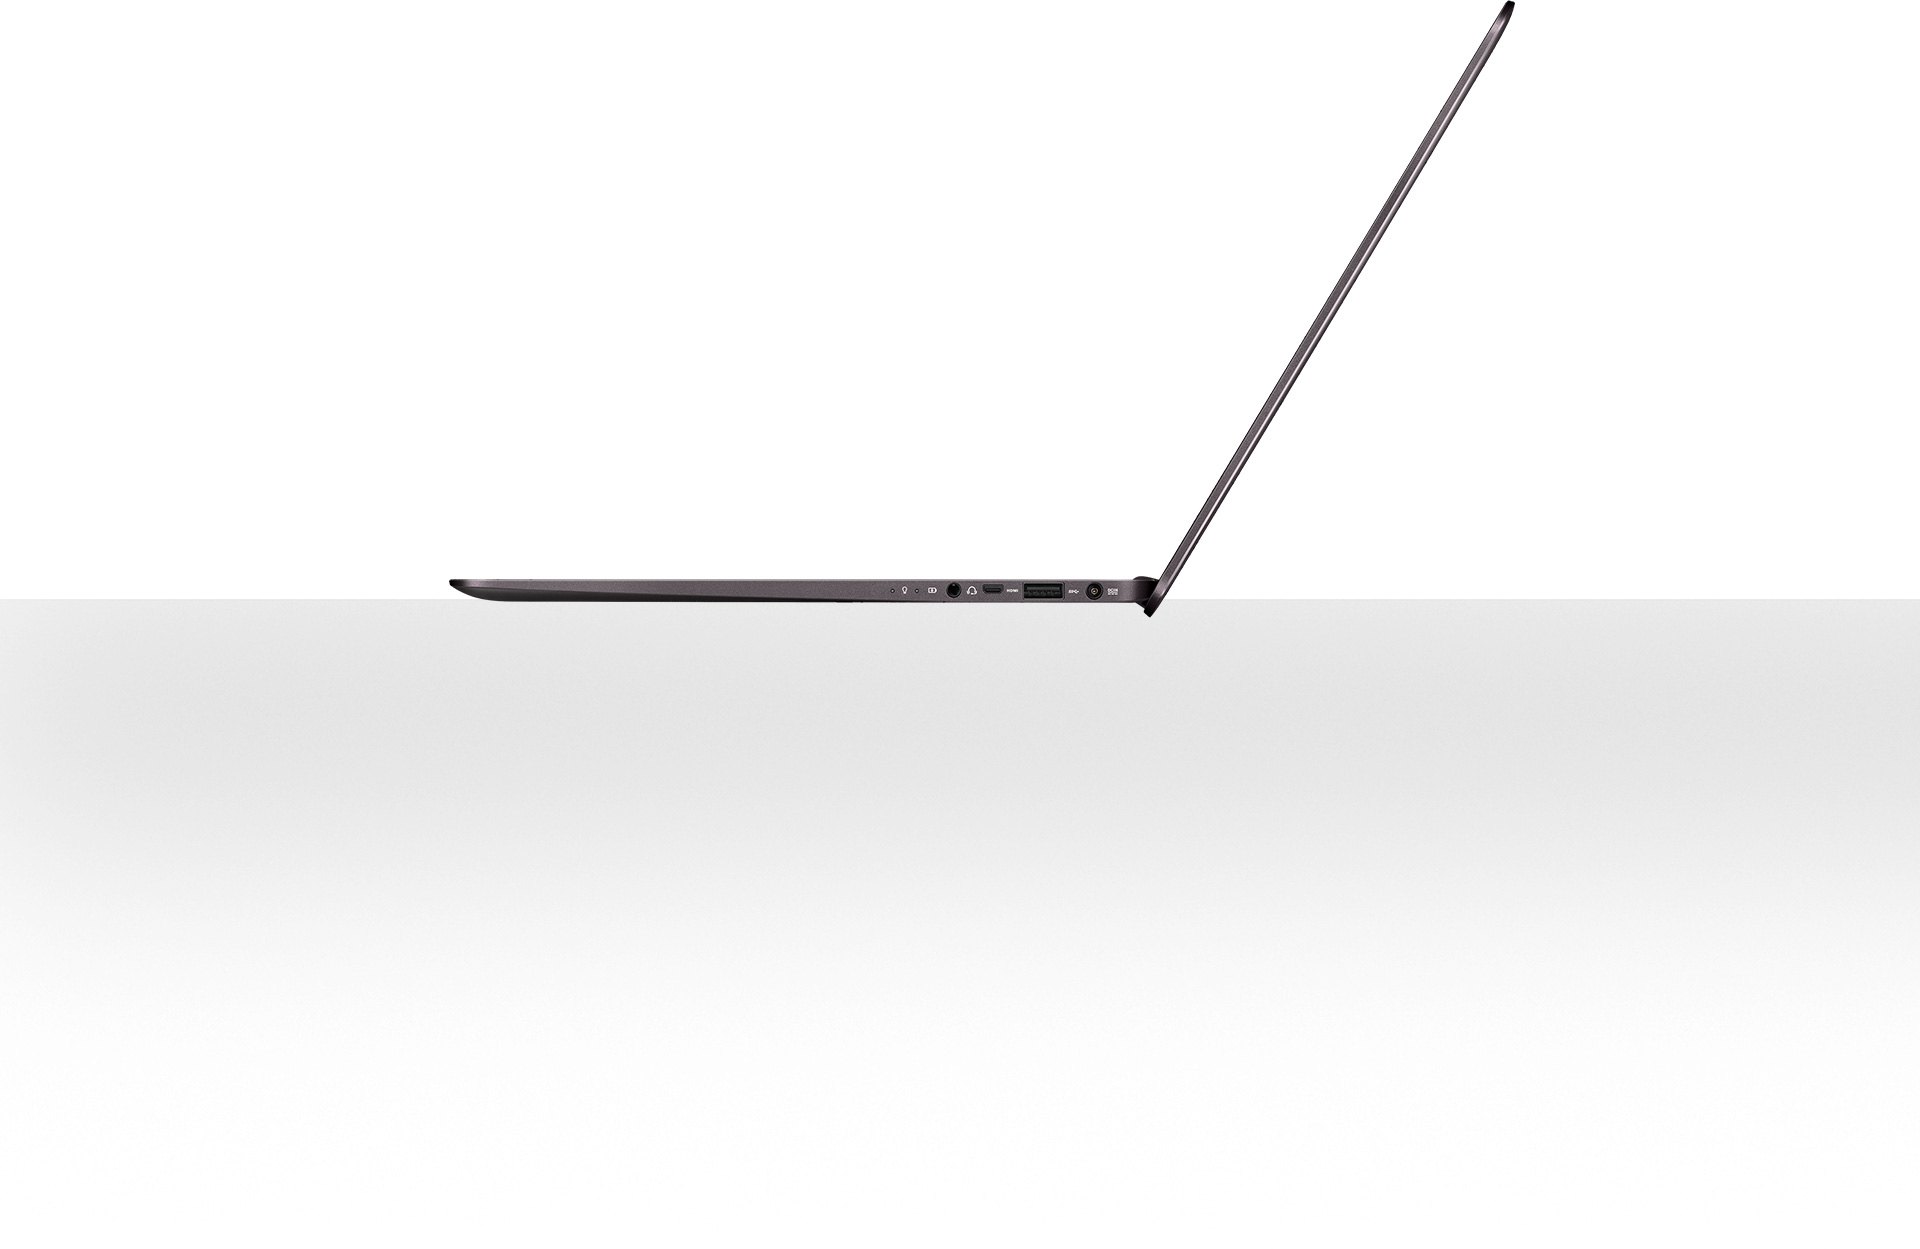 Asus Zenbook Ux305ca Laptops India Charger Wiring Diagram A Slim Featherweight Powerhouse